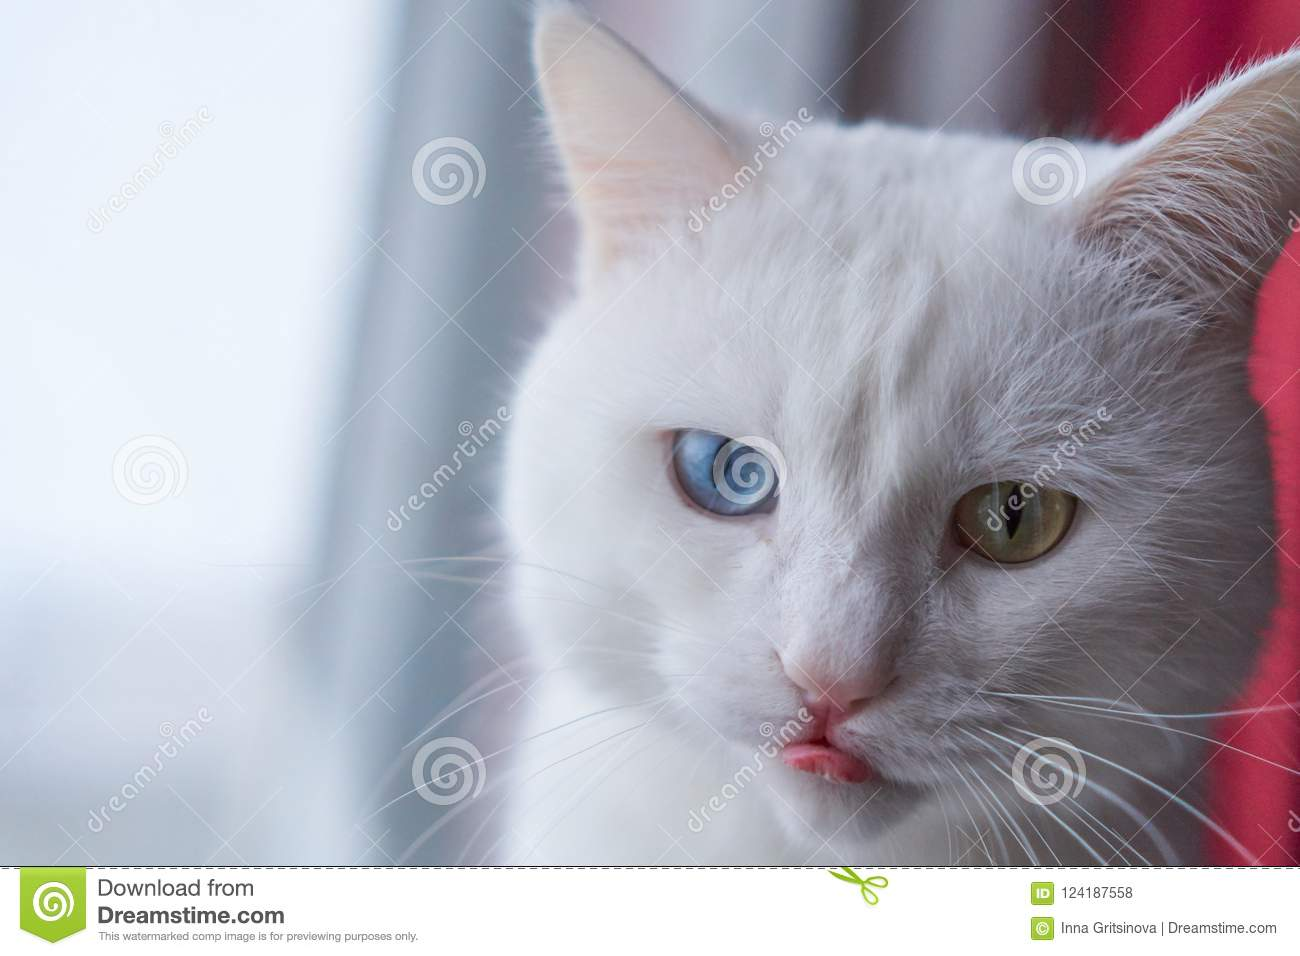 d7bf6d08c6 White cat with different eyes. Odd-eyed kitten. Cat with 2  different-colored eyes